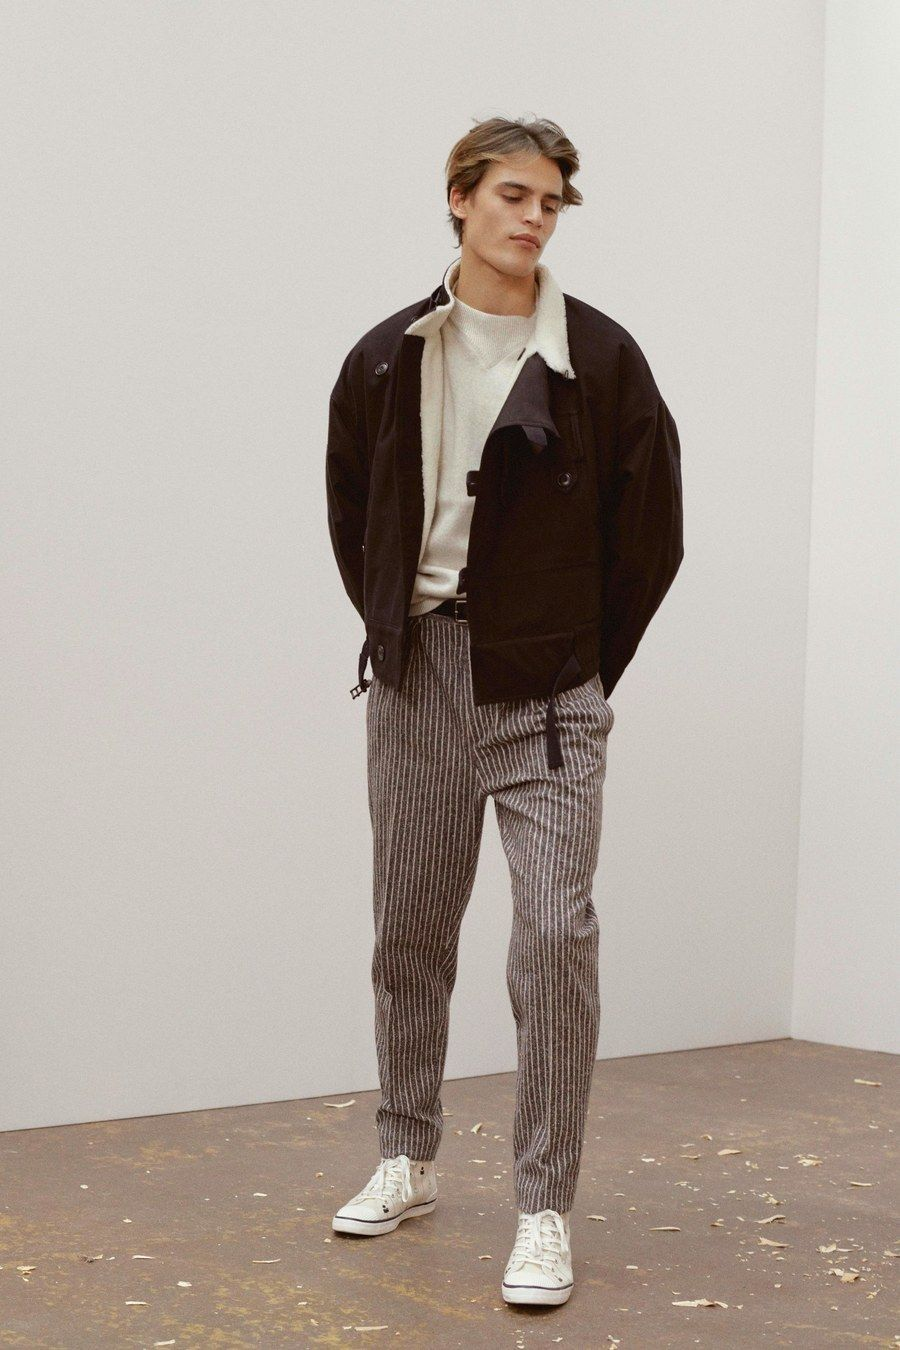 Isabel Marant Fall 2019 Menswear Fashion Show – fashion II